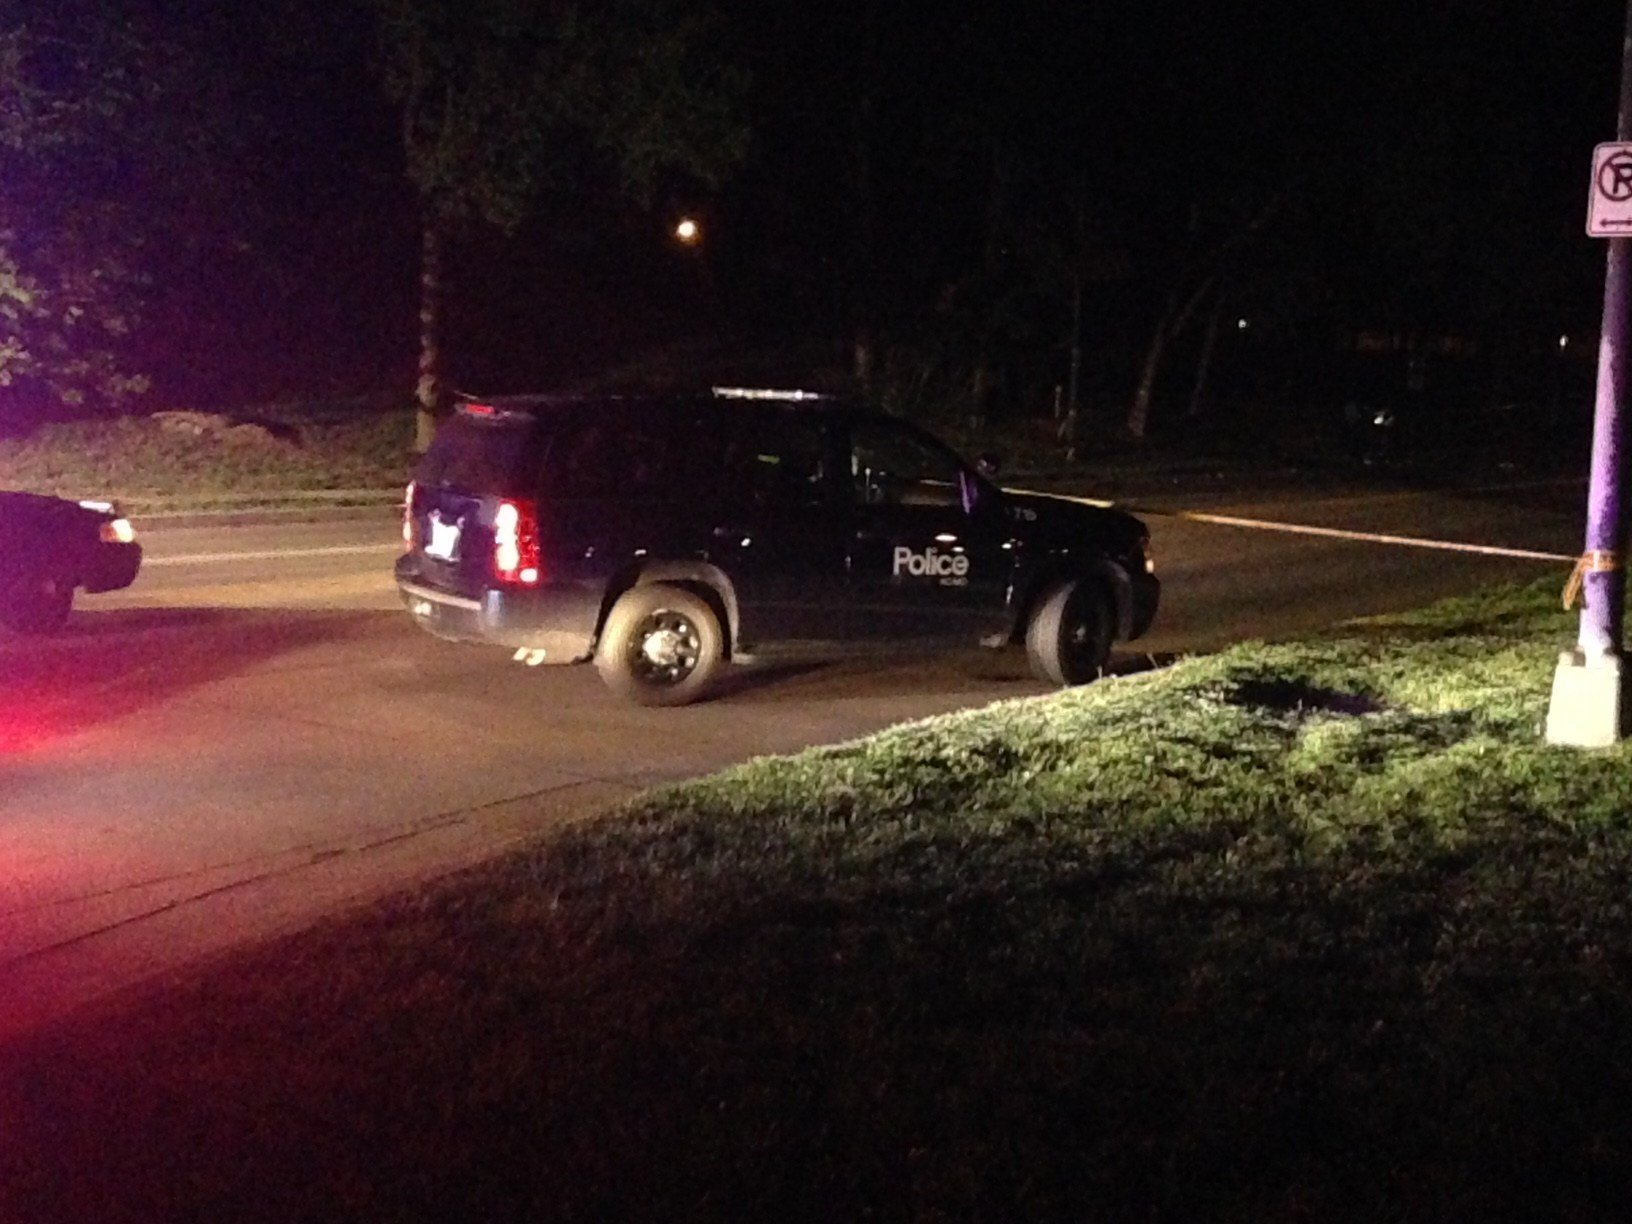 The accident happened about 3:15 a.m. Wednesday on Emanuel Cleaver II Boulevard near U.S. Highway 71.